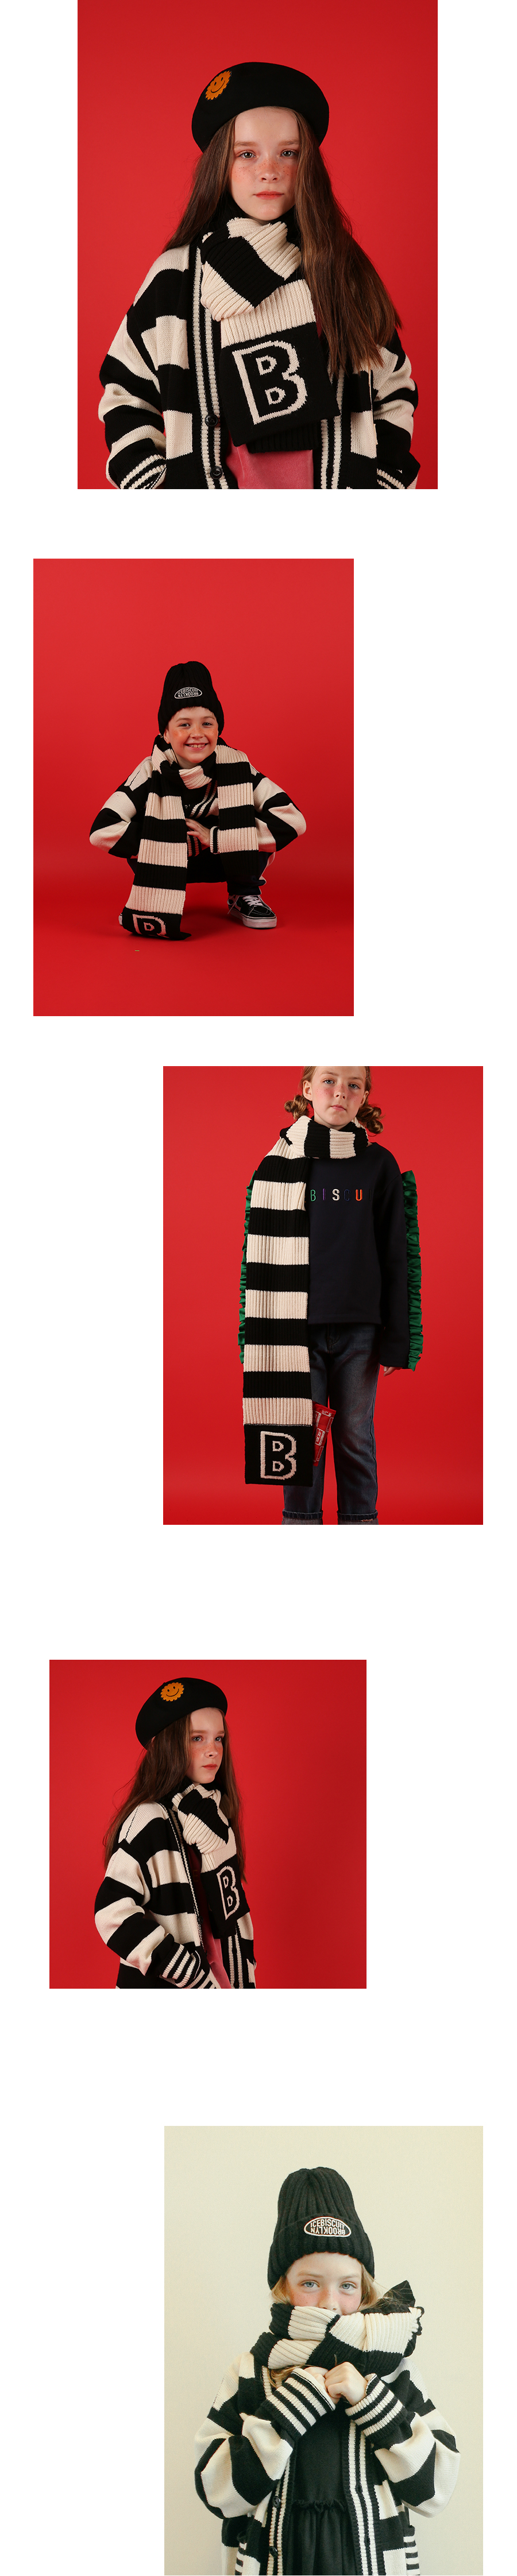 B Wappen point stripe muffler 상세 이미지